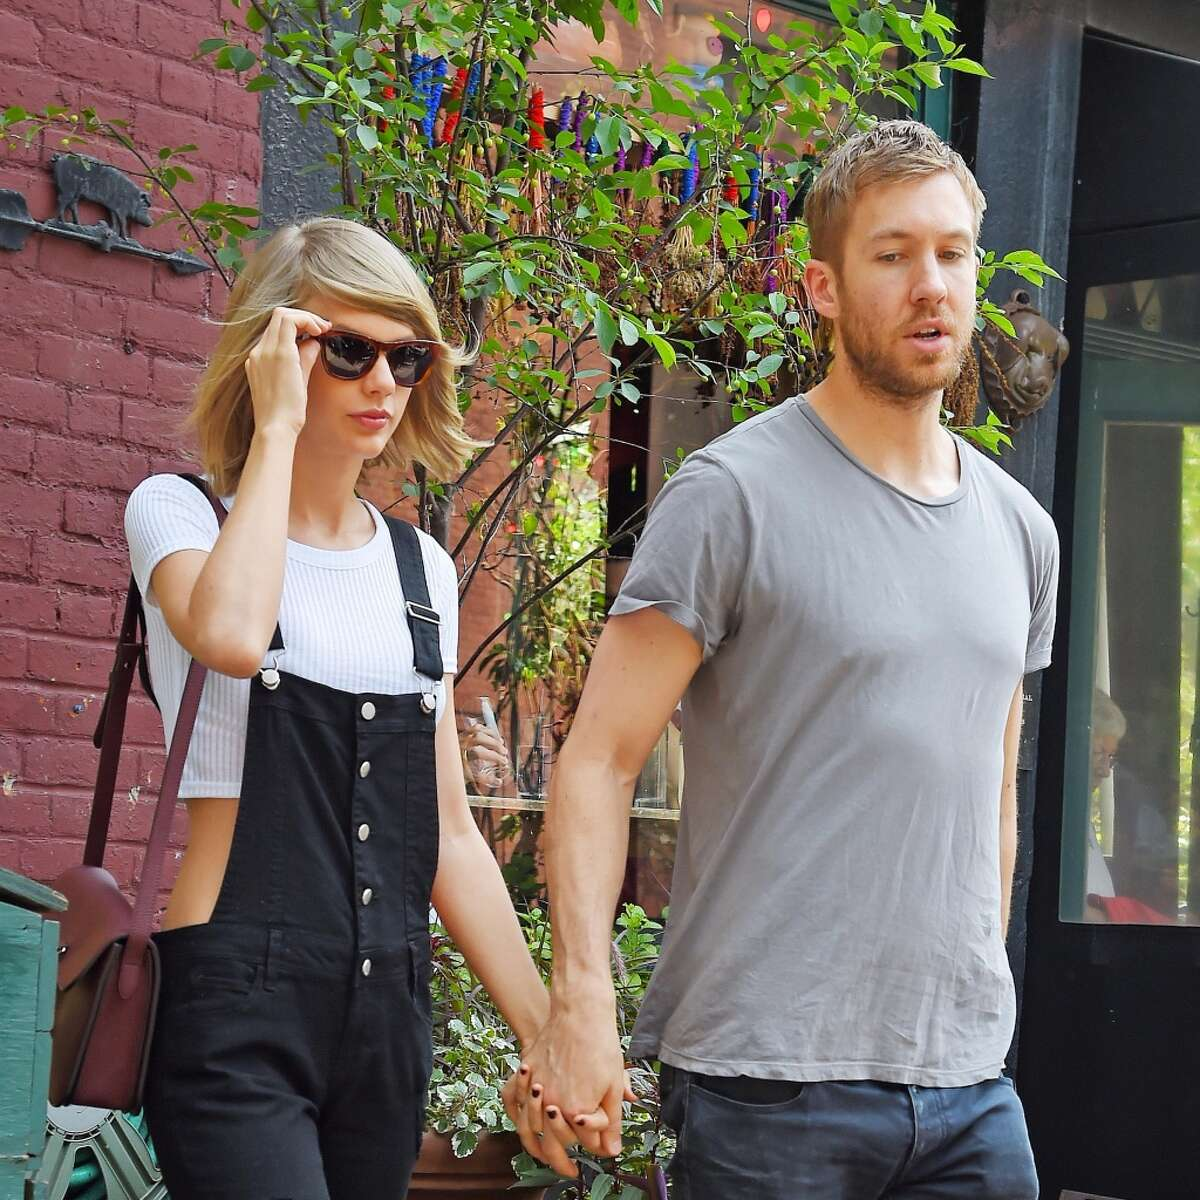 Taylor Swift and Calvin Harris get lunch at the Spotted Pig on May 28, 2015 in New York, New York. (Photo by Josiah Kamau/BuzzFoto via Getty Images)